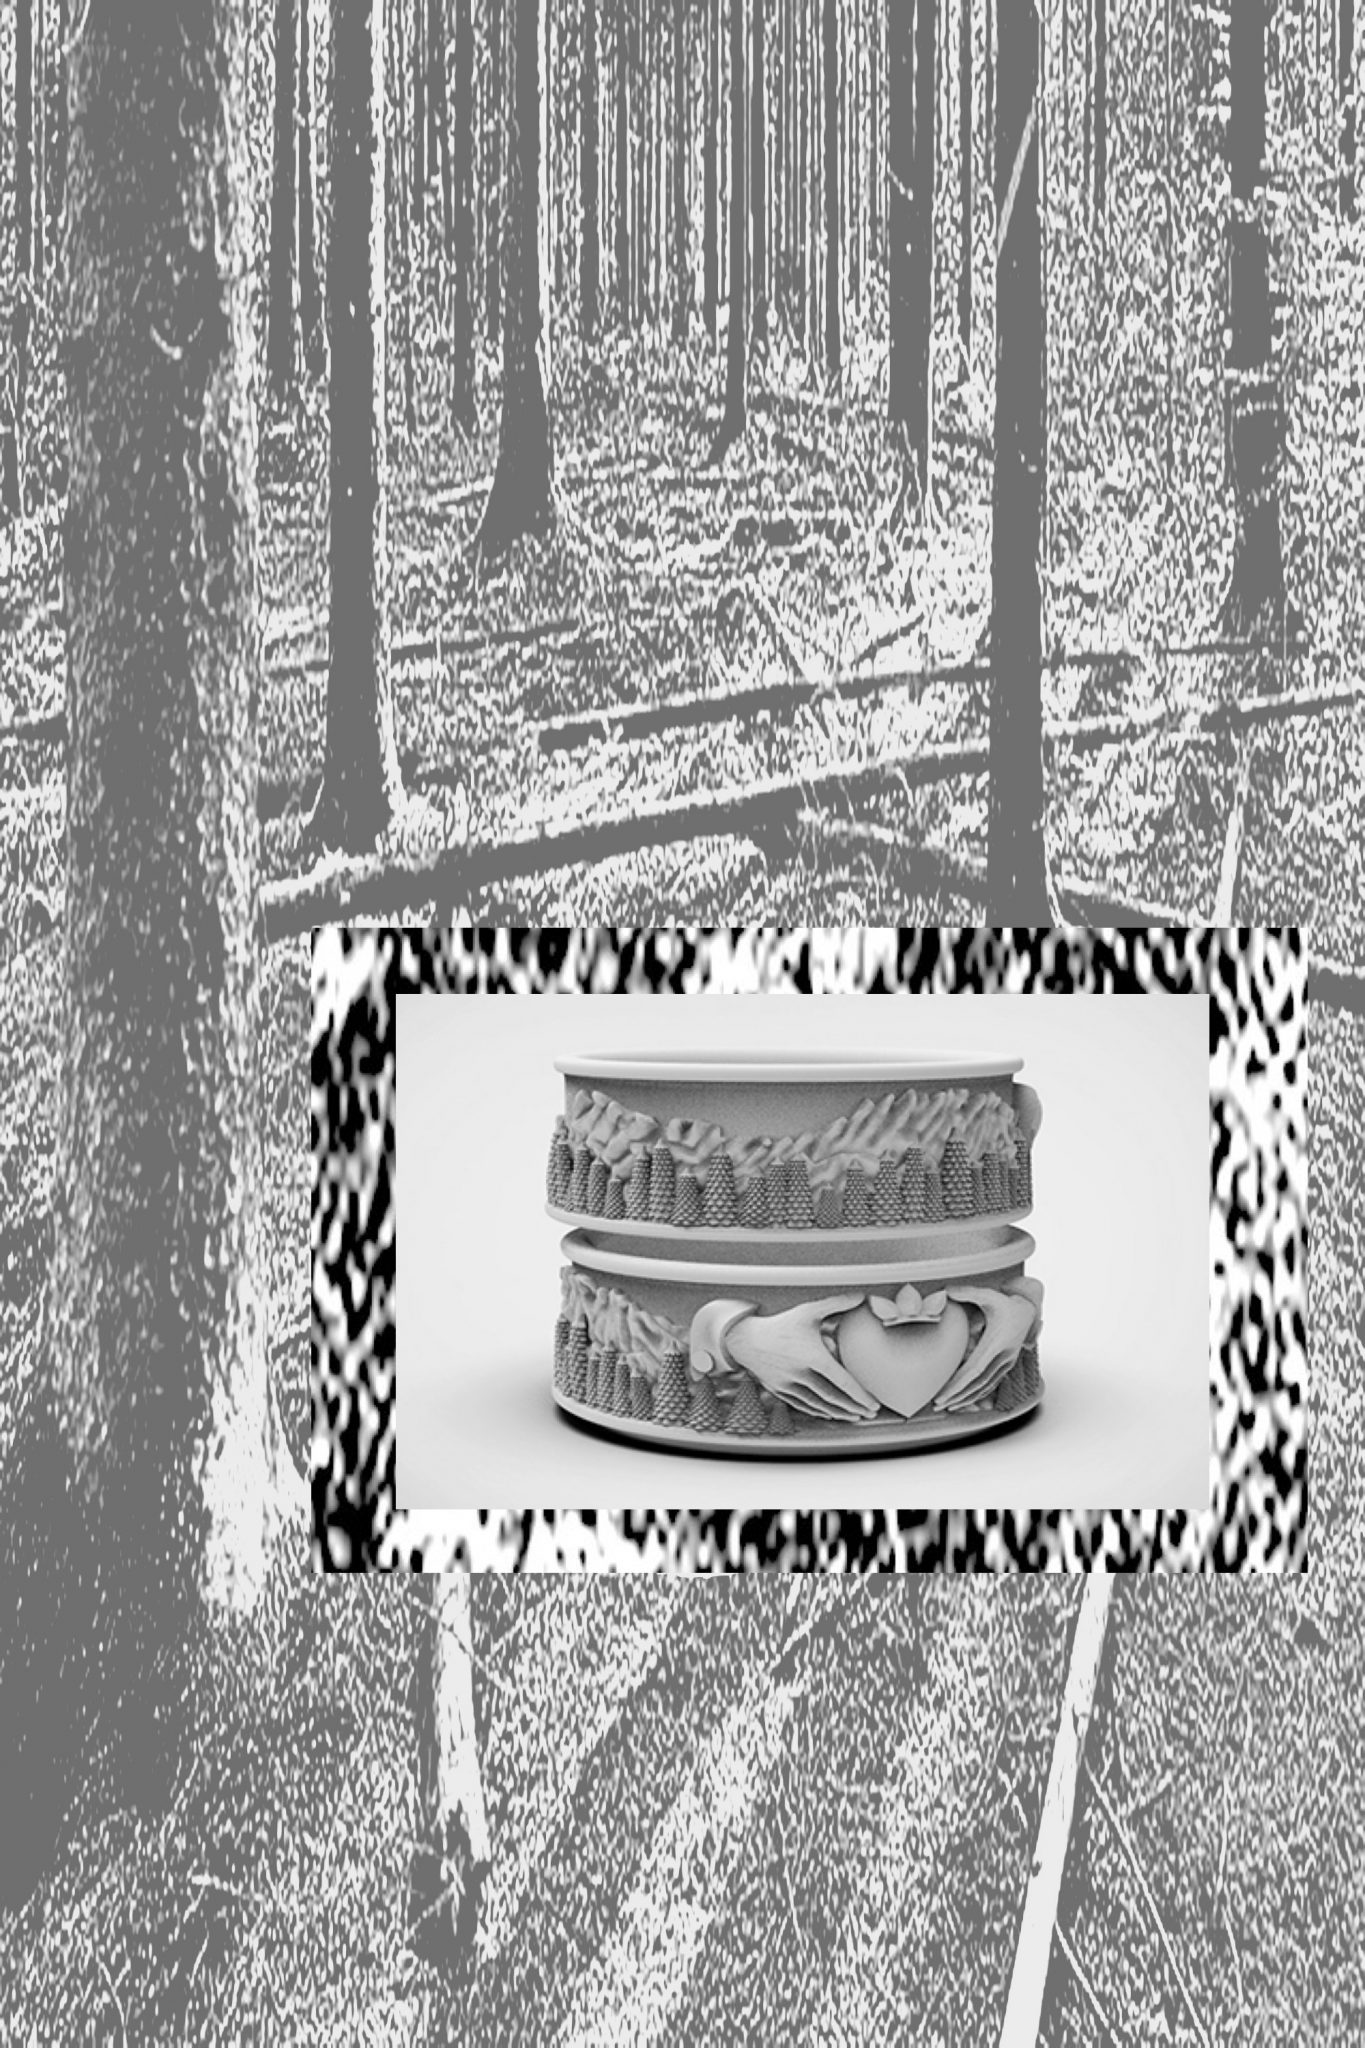 FERTILITY BELT 𝑏𝑦 Garett Strickland